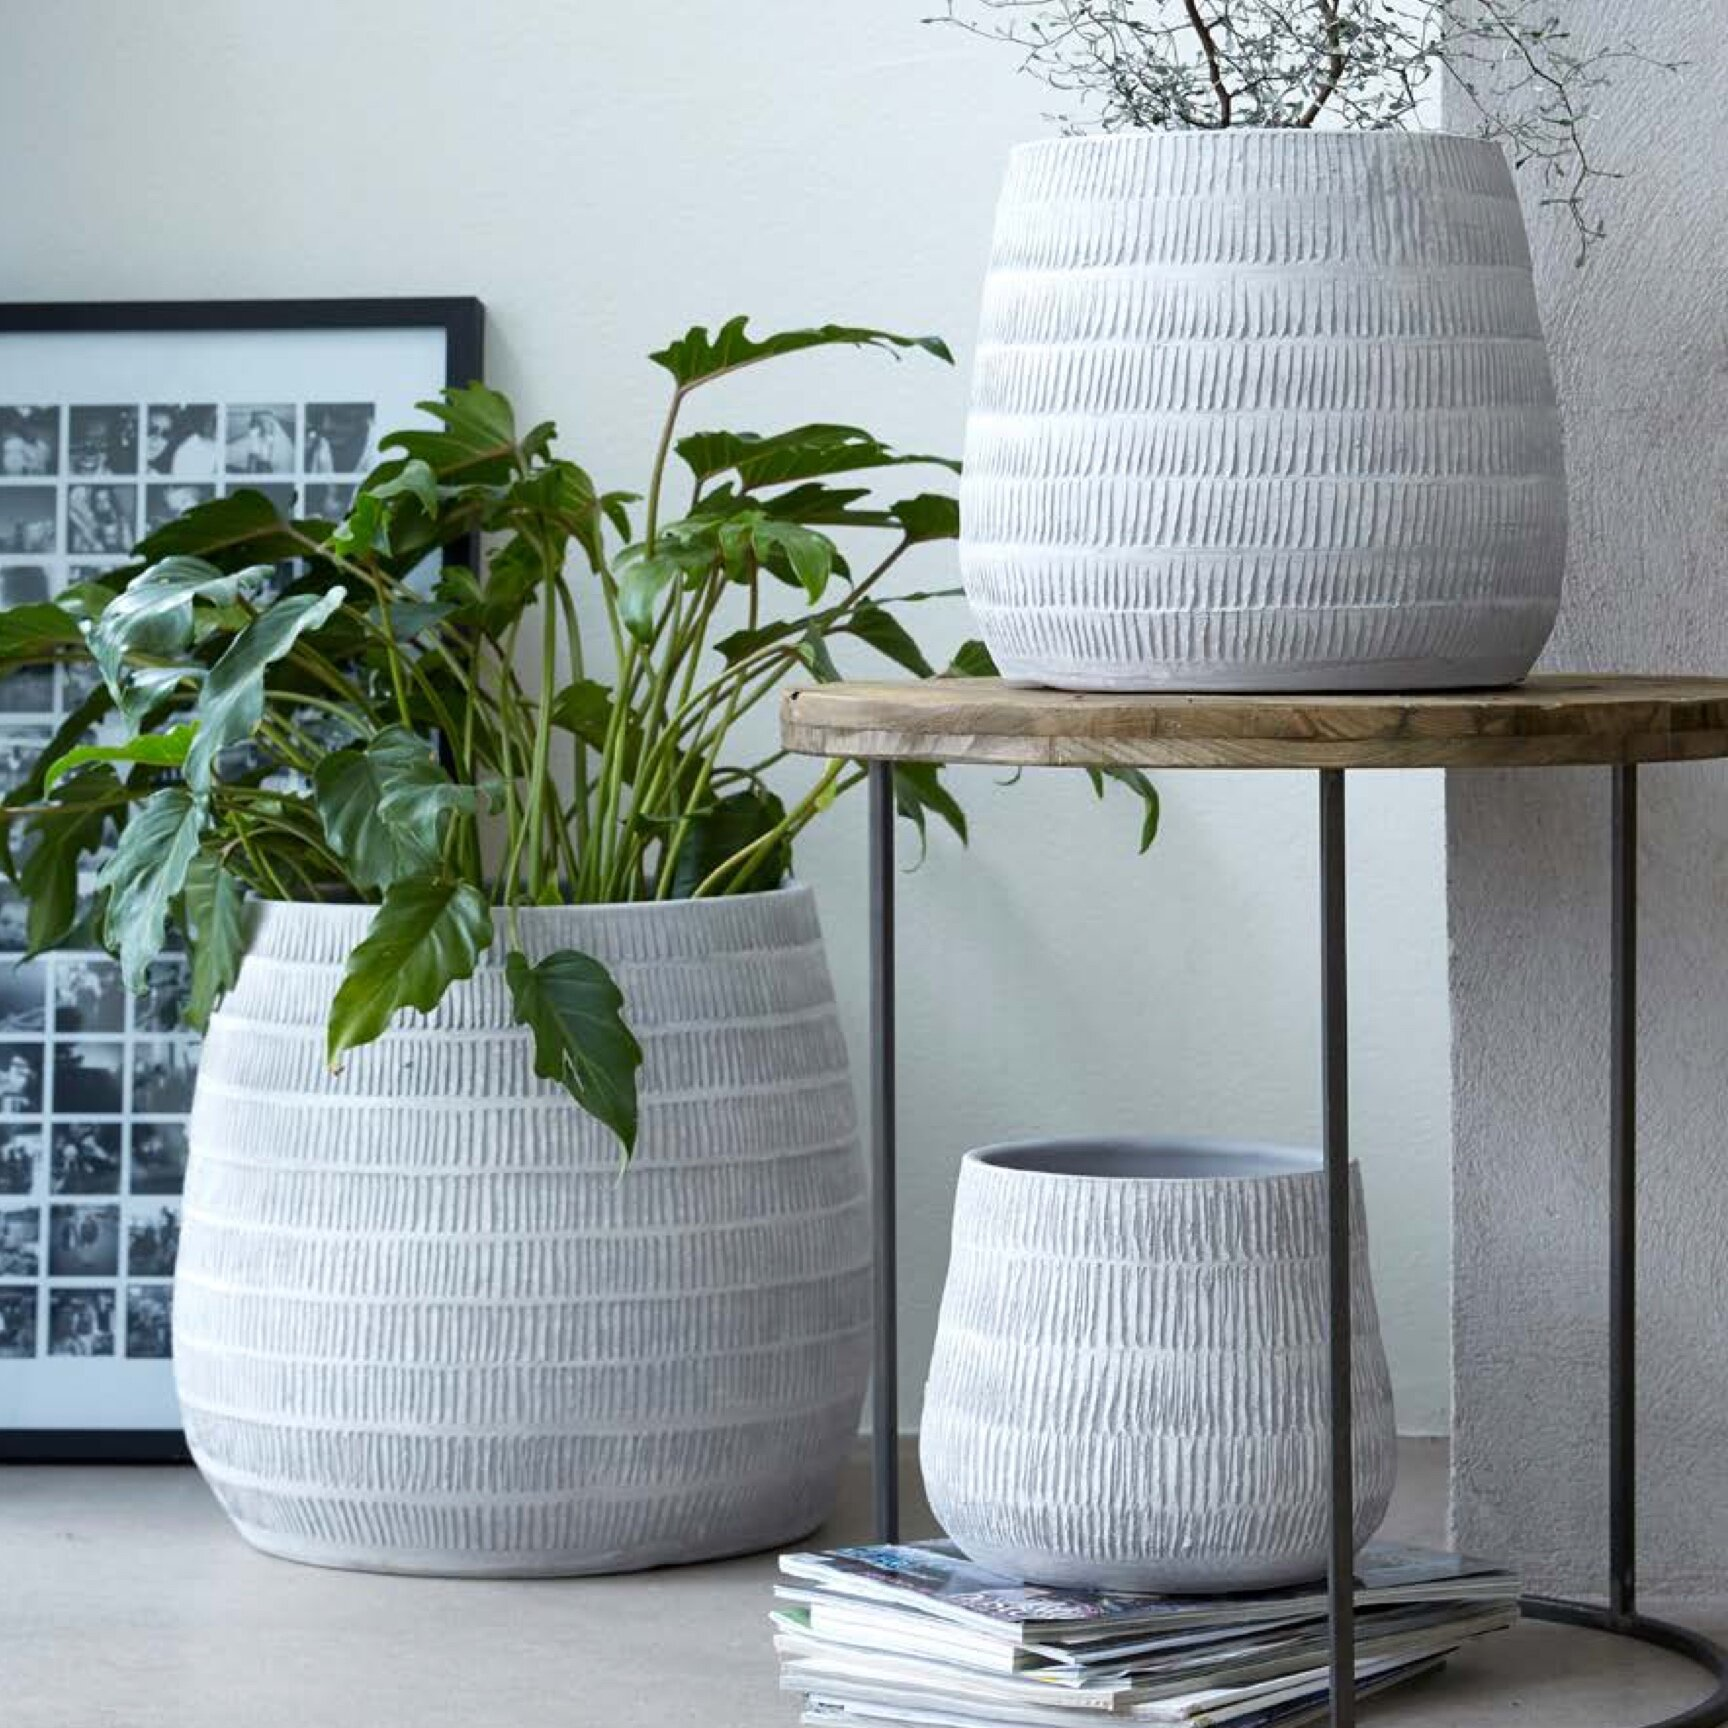 Indoor Pots - Well placed plants can transform your home, bringing character, structure and serenity to any room. However, picking the right pot is almost as important as choosing the right plant.One key factor to consider is drainage. Most houseplants don't like standing in water, so your pot should have a hole at the bottom to allow water to escape. If you choose an indoor pot without drainage holes, it's best to keep the plant in its original plastic container, placing it inside your chosen decorative pot on a layer of gravel or small saucer.With dozens of indoor pots to choose from, in a wide variety of styles and colours, we're sure to have the right one for you.